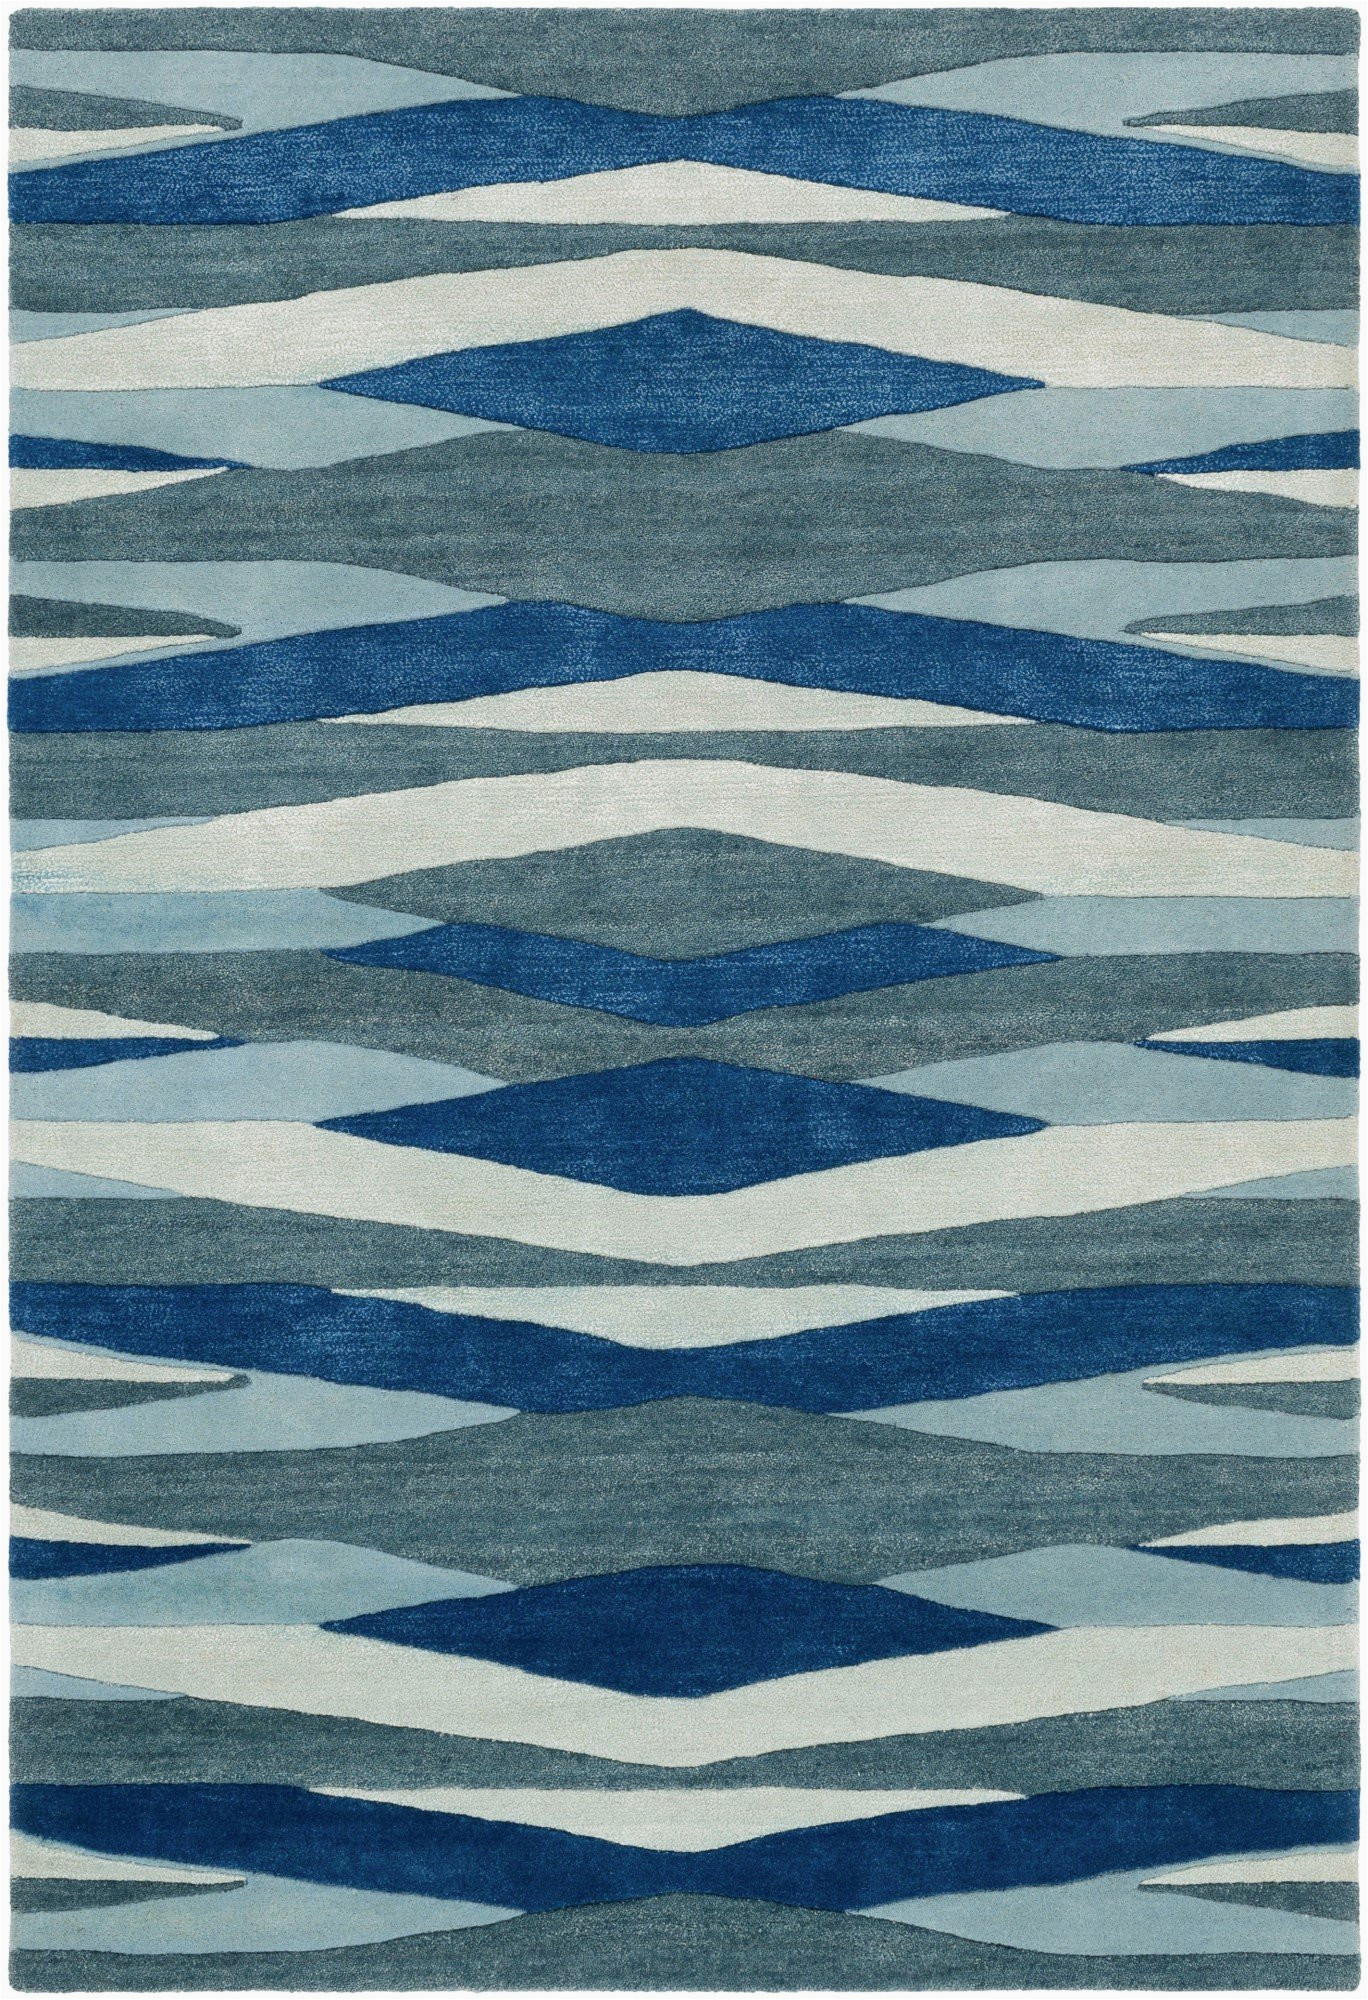 Teal and Blue Rug Surya Artist Studio Art 253 area Rugs